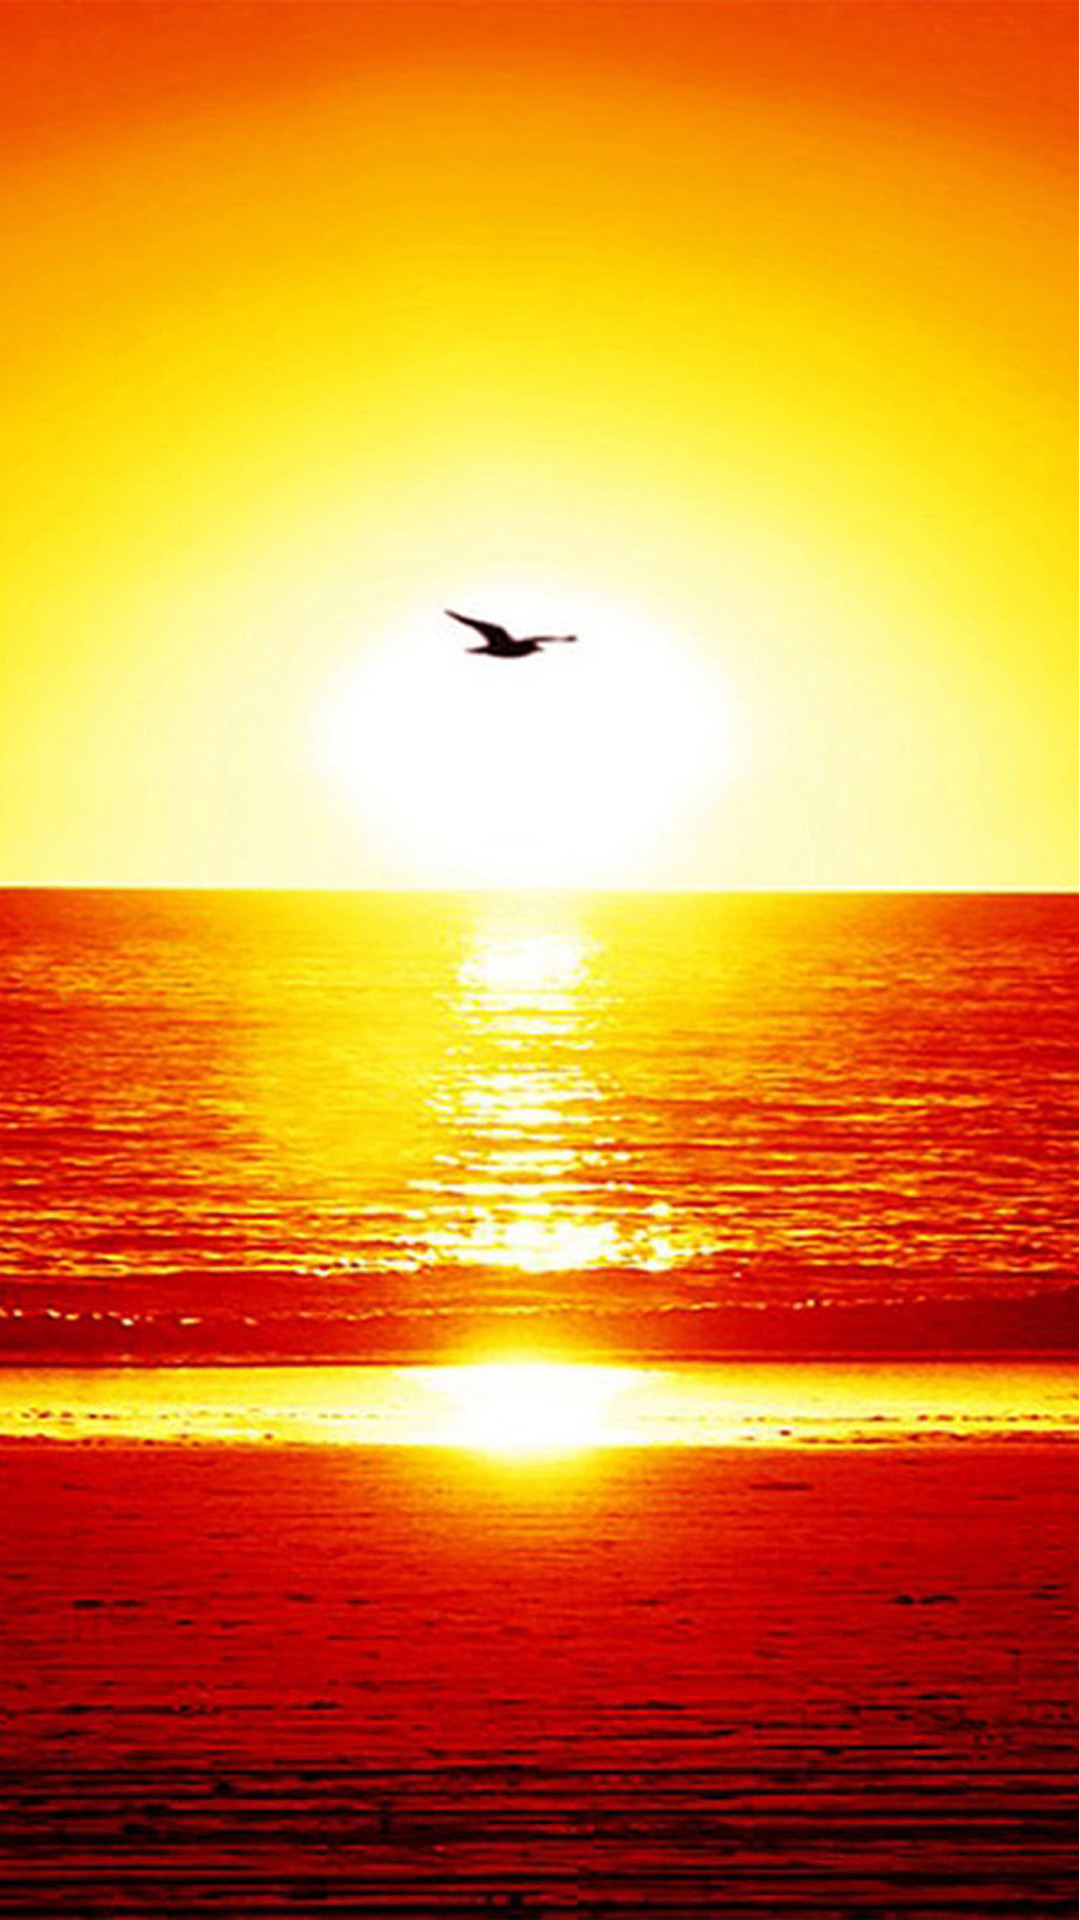 Beach Seagull Sunset Android wallpaper